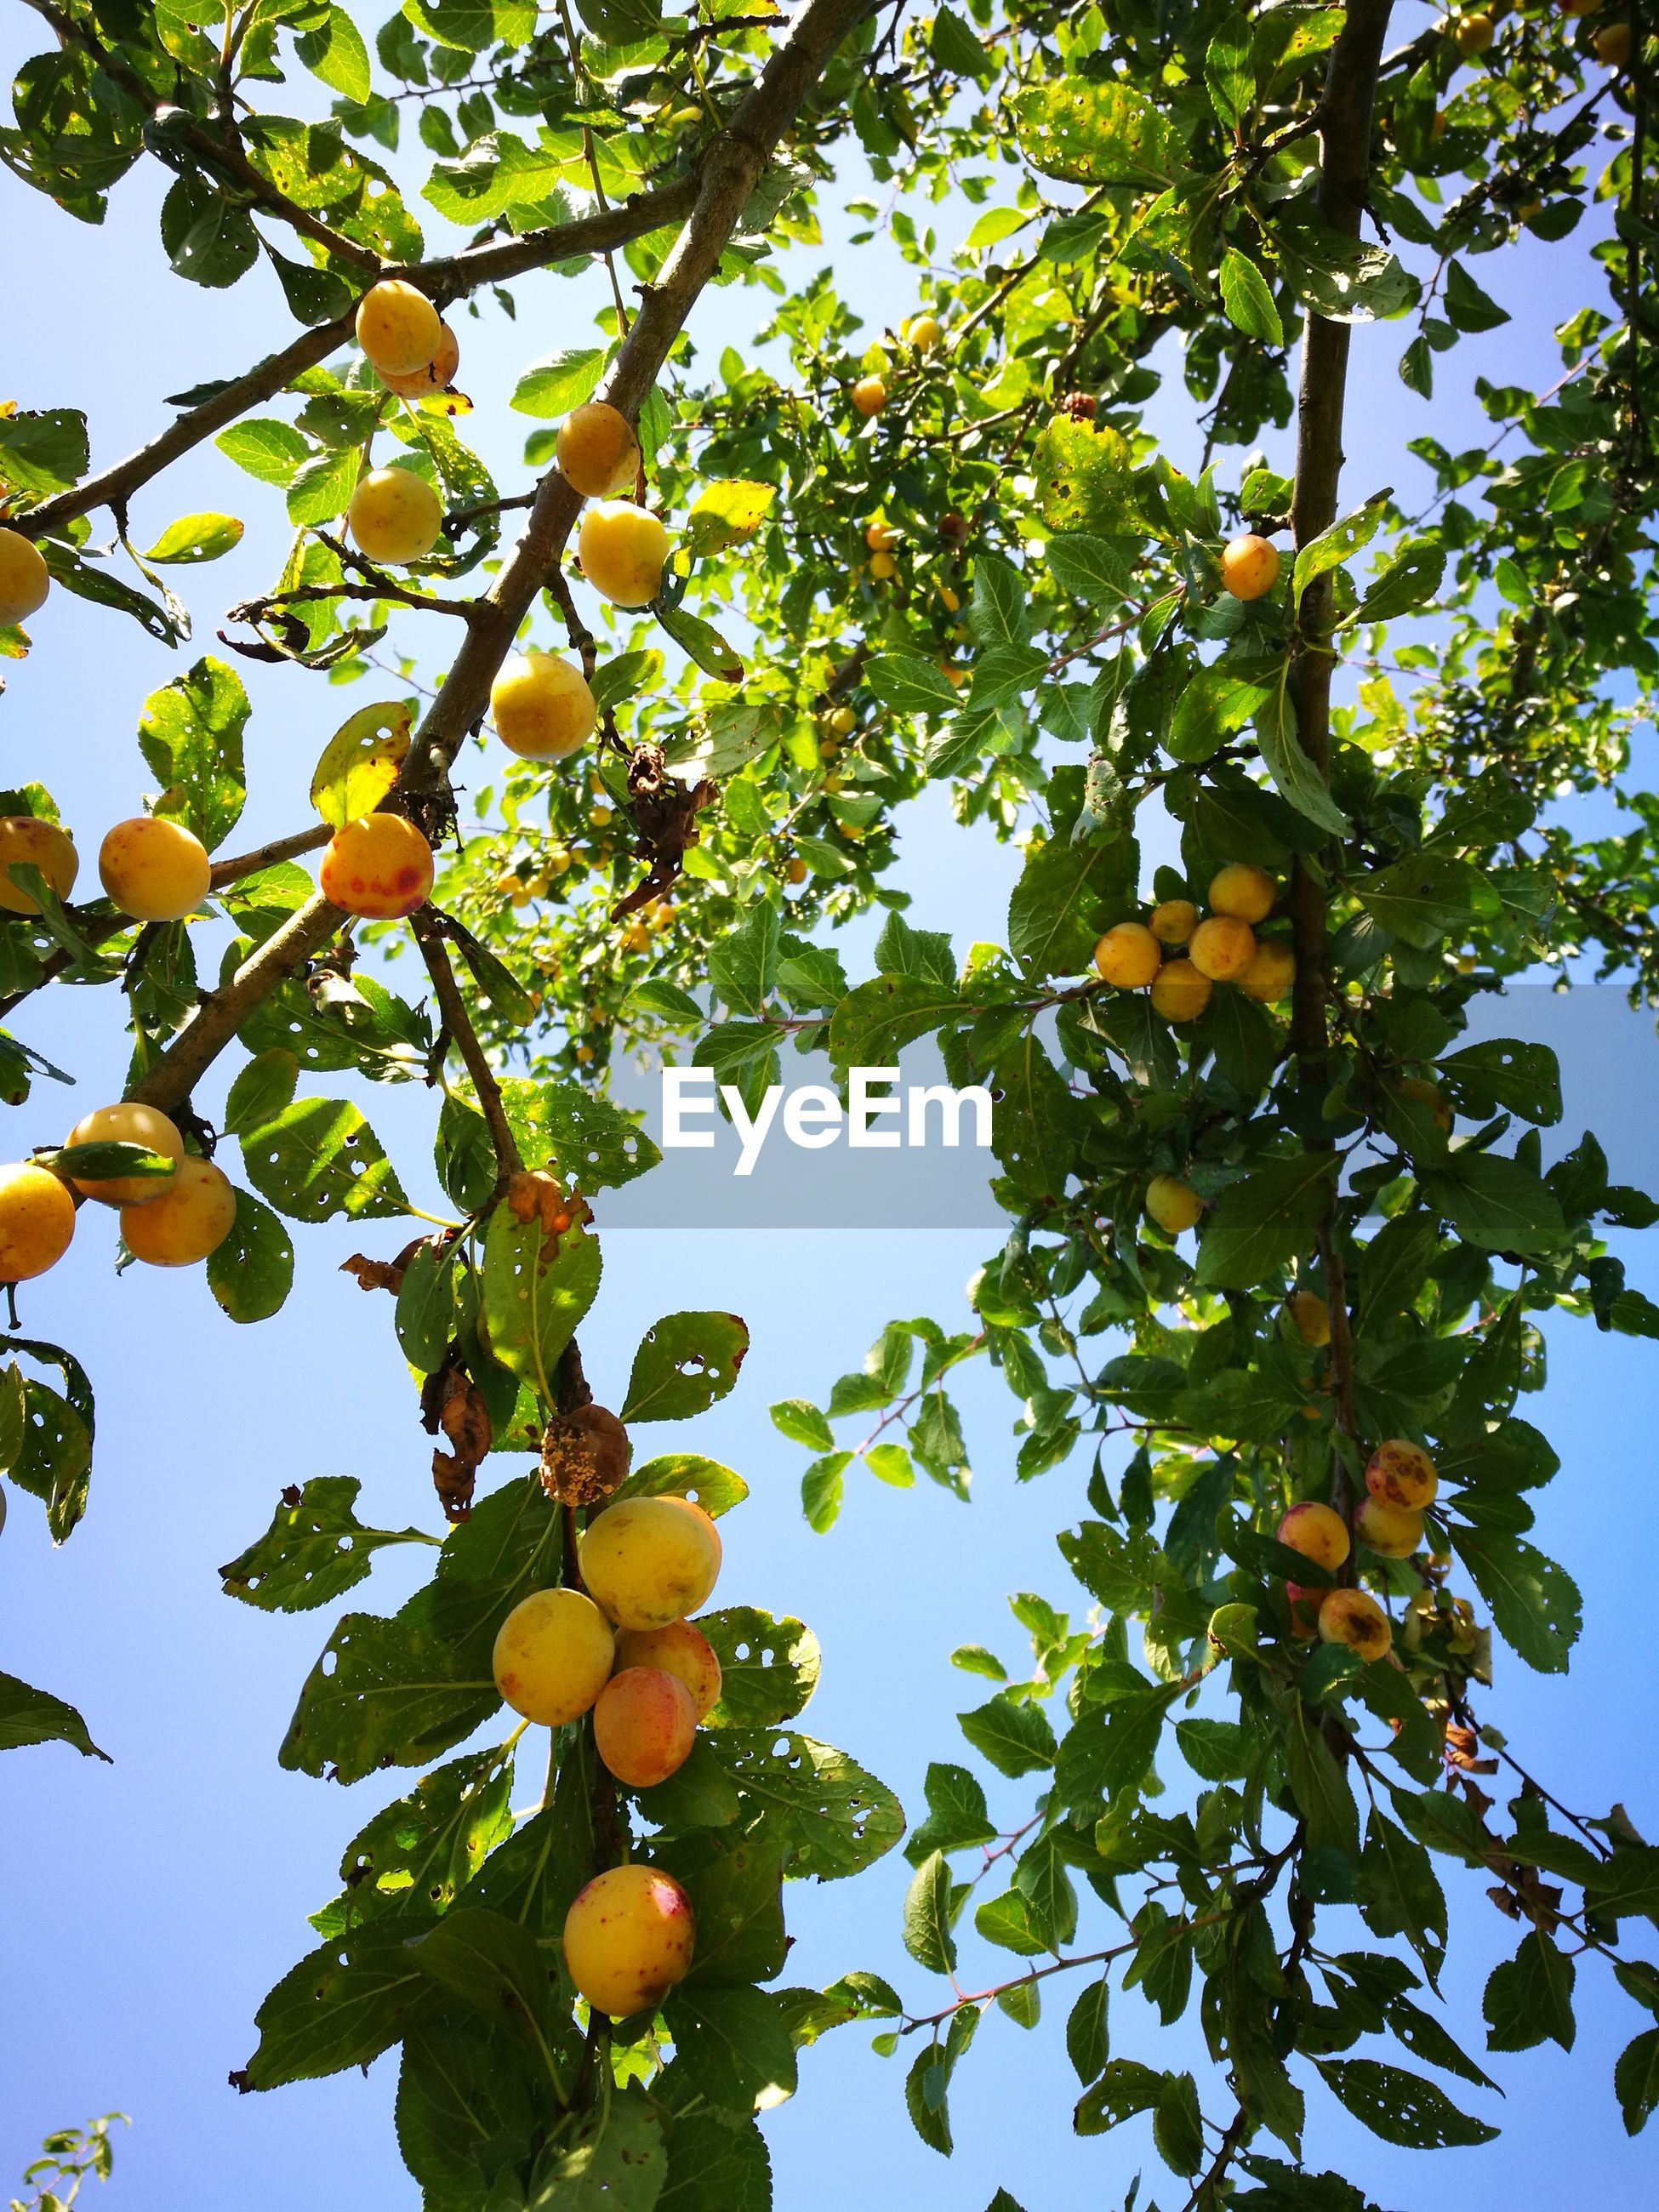 Low angle view of mirabelle plums growing on tree